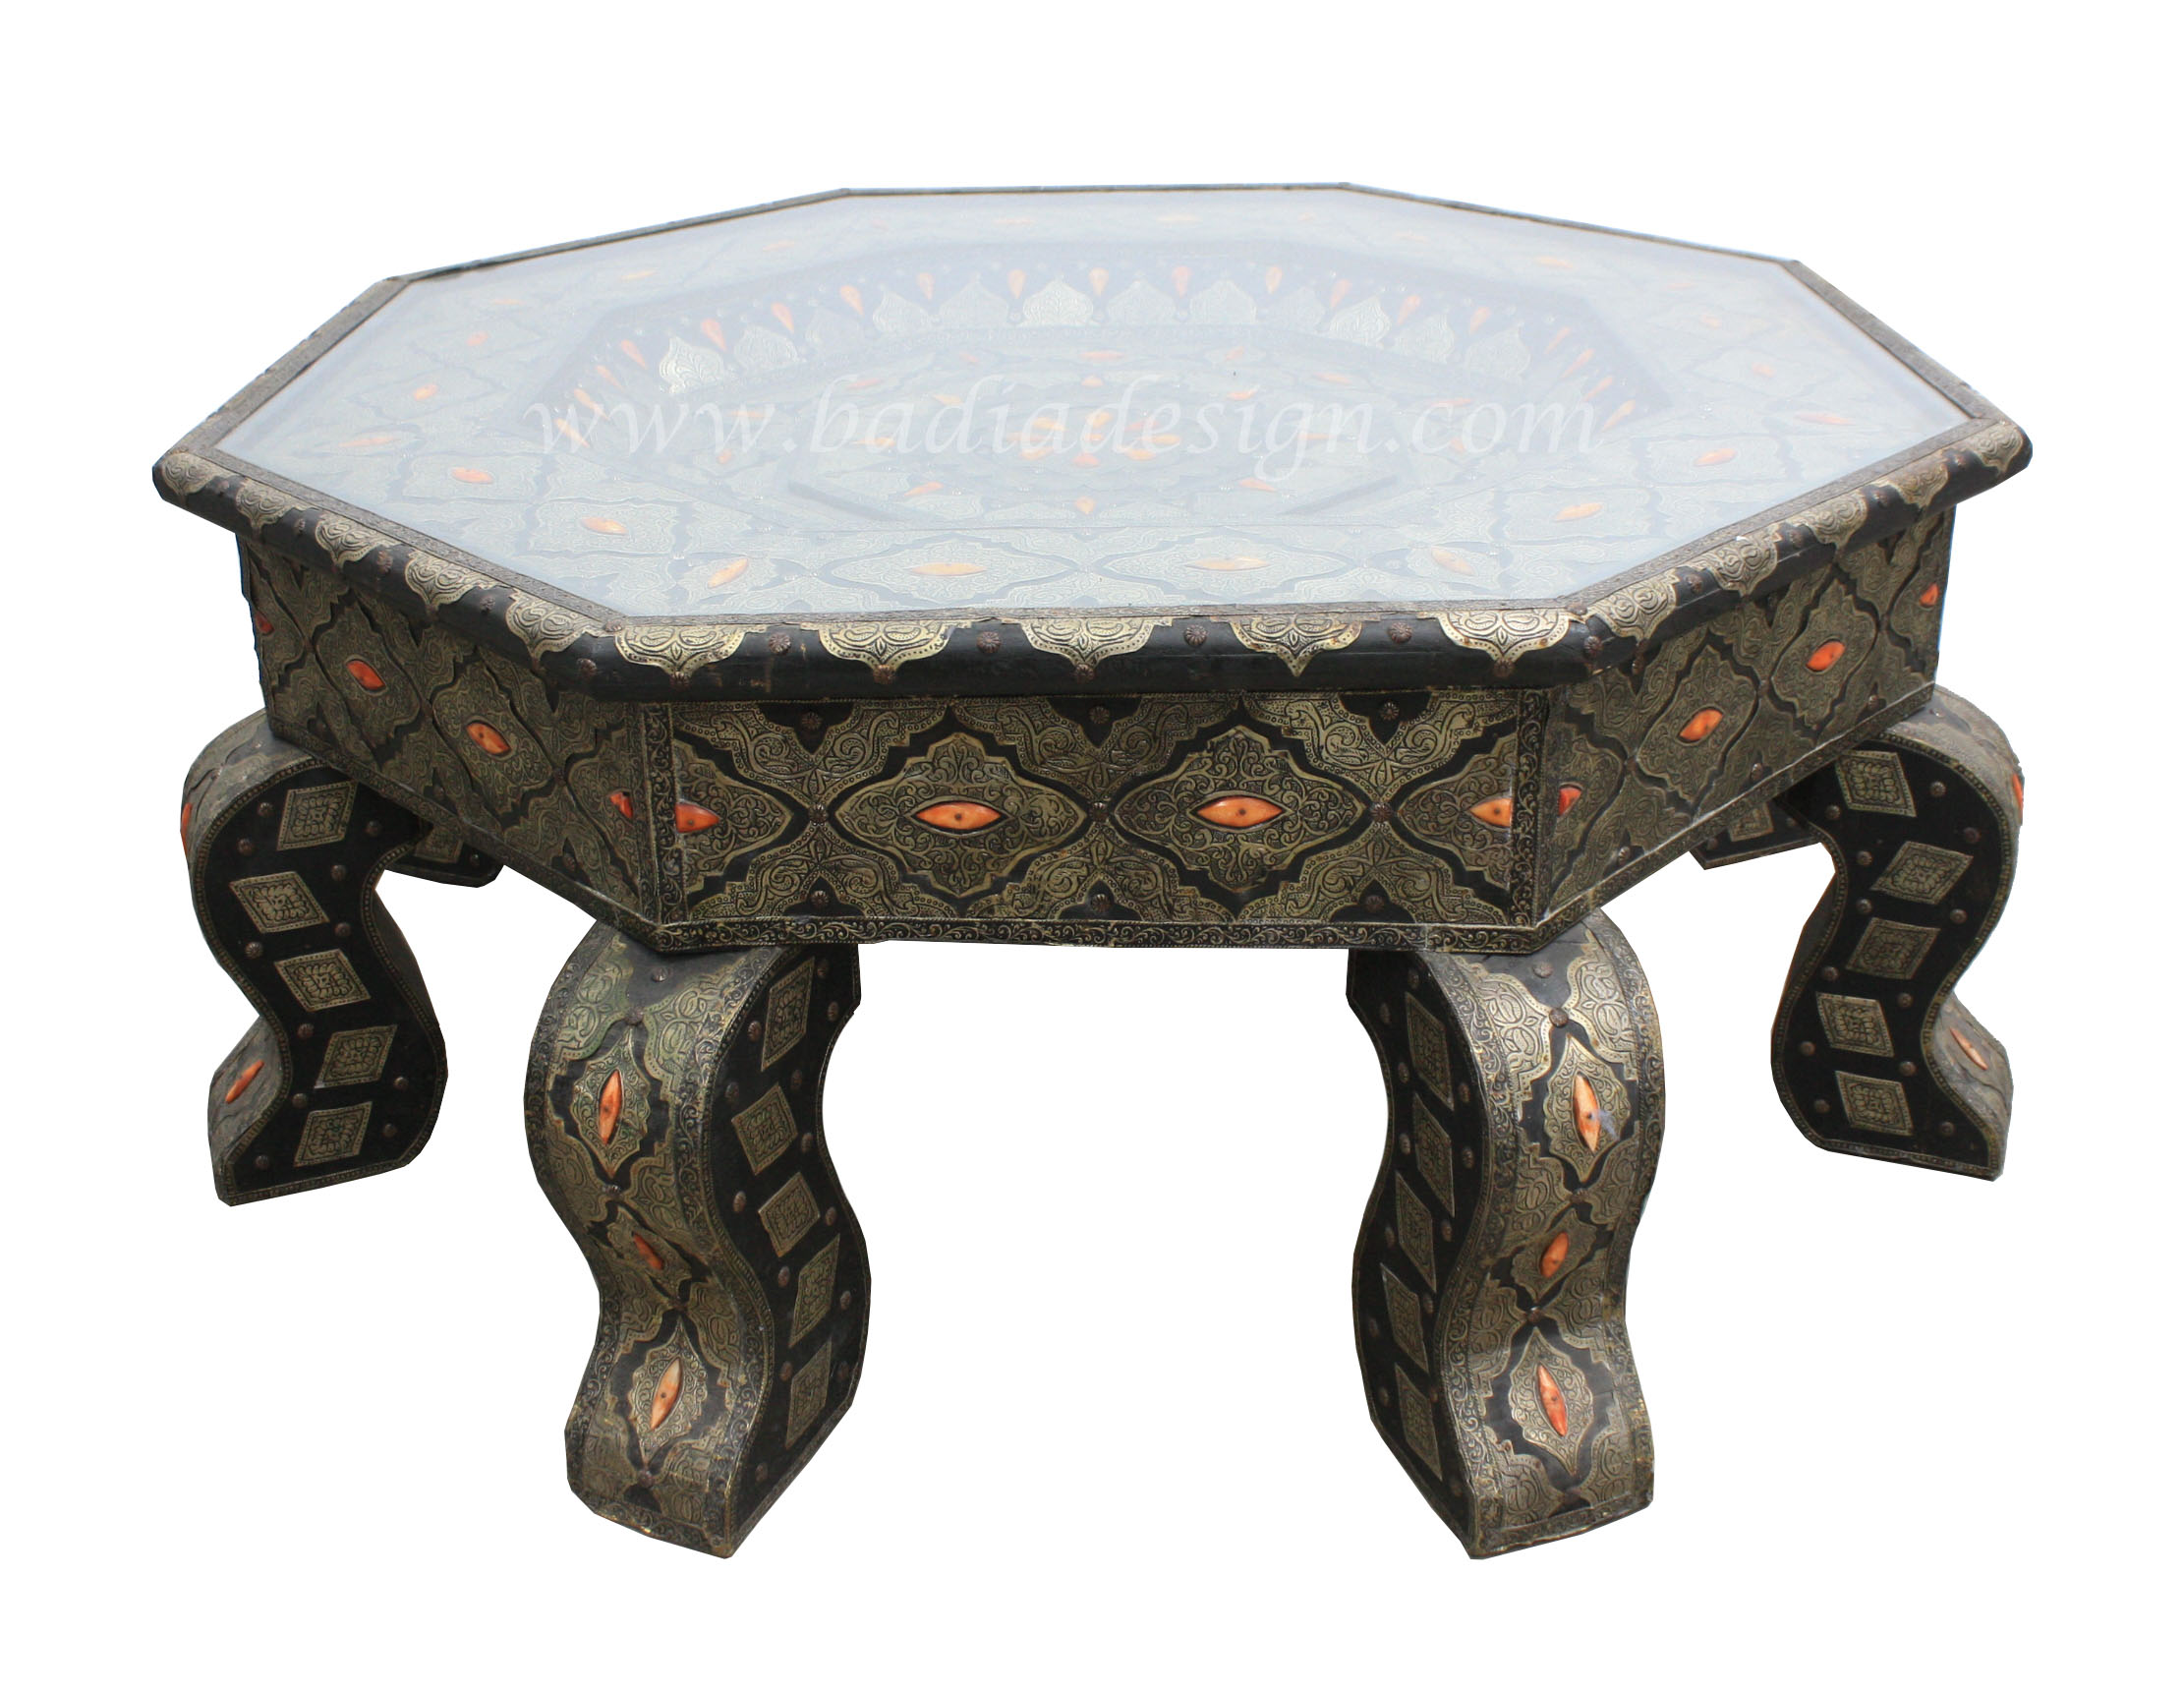 moroccan-octagon-shaped-coffee-table-mb-st064-1.jpg